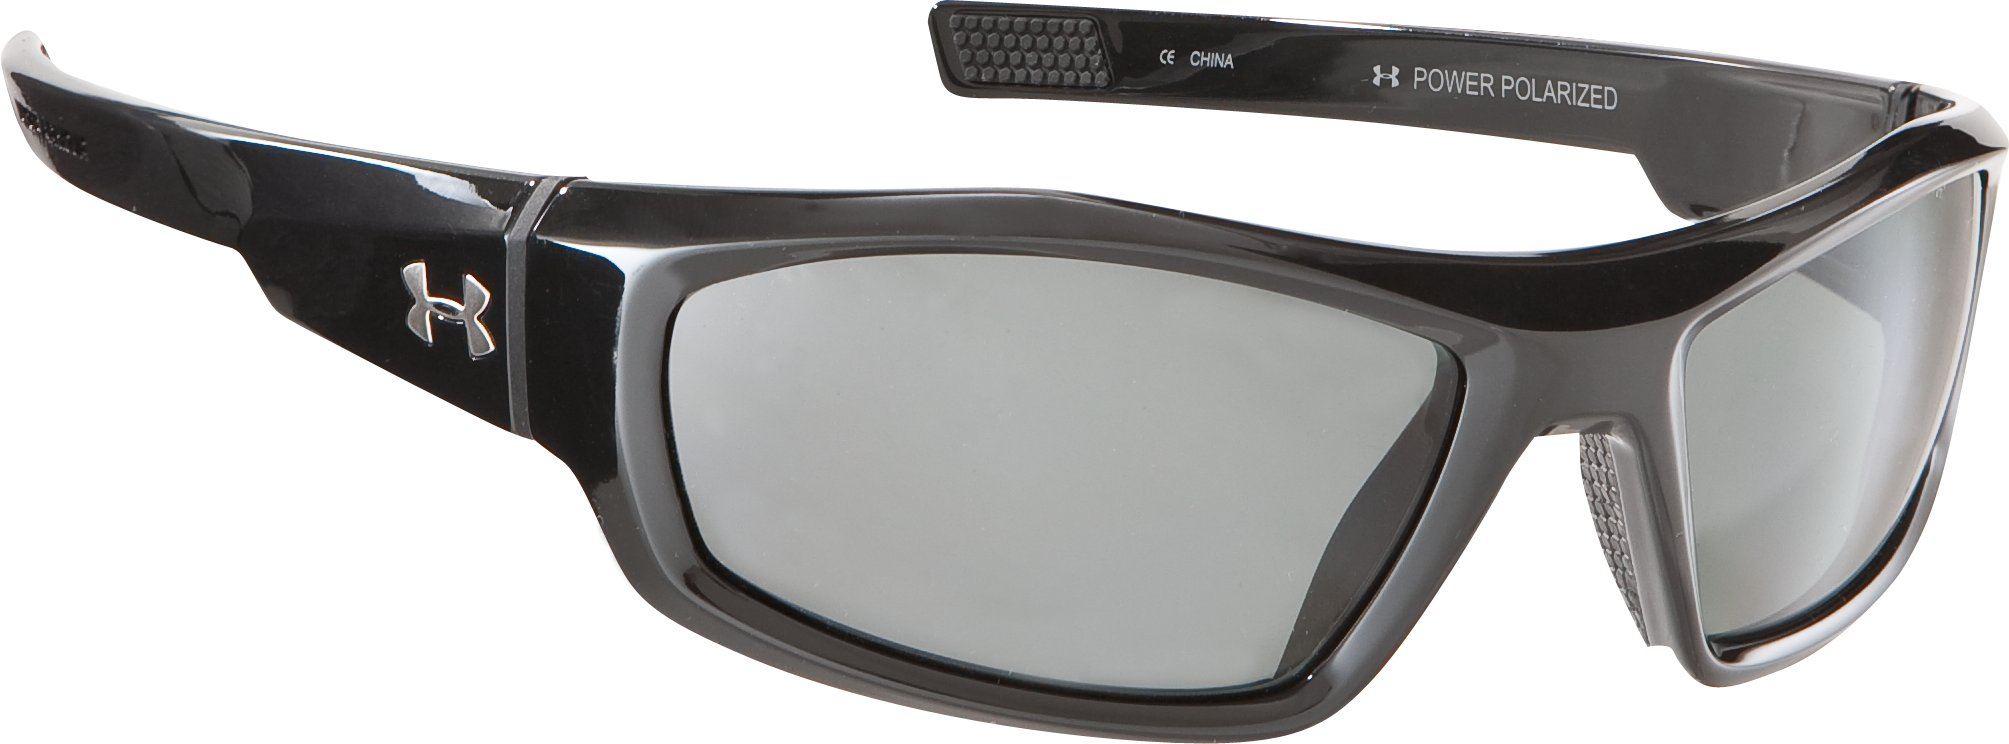 UA Power Polarized Multiflection™ Sunglasses, Shiny Black